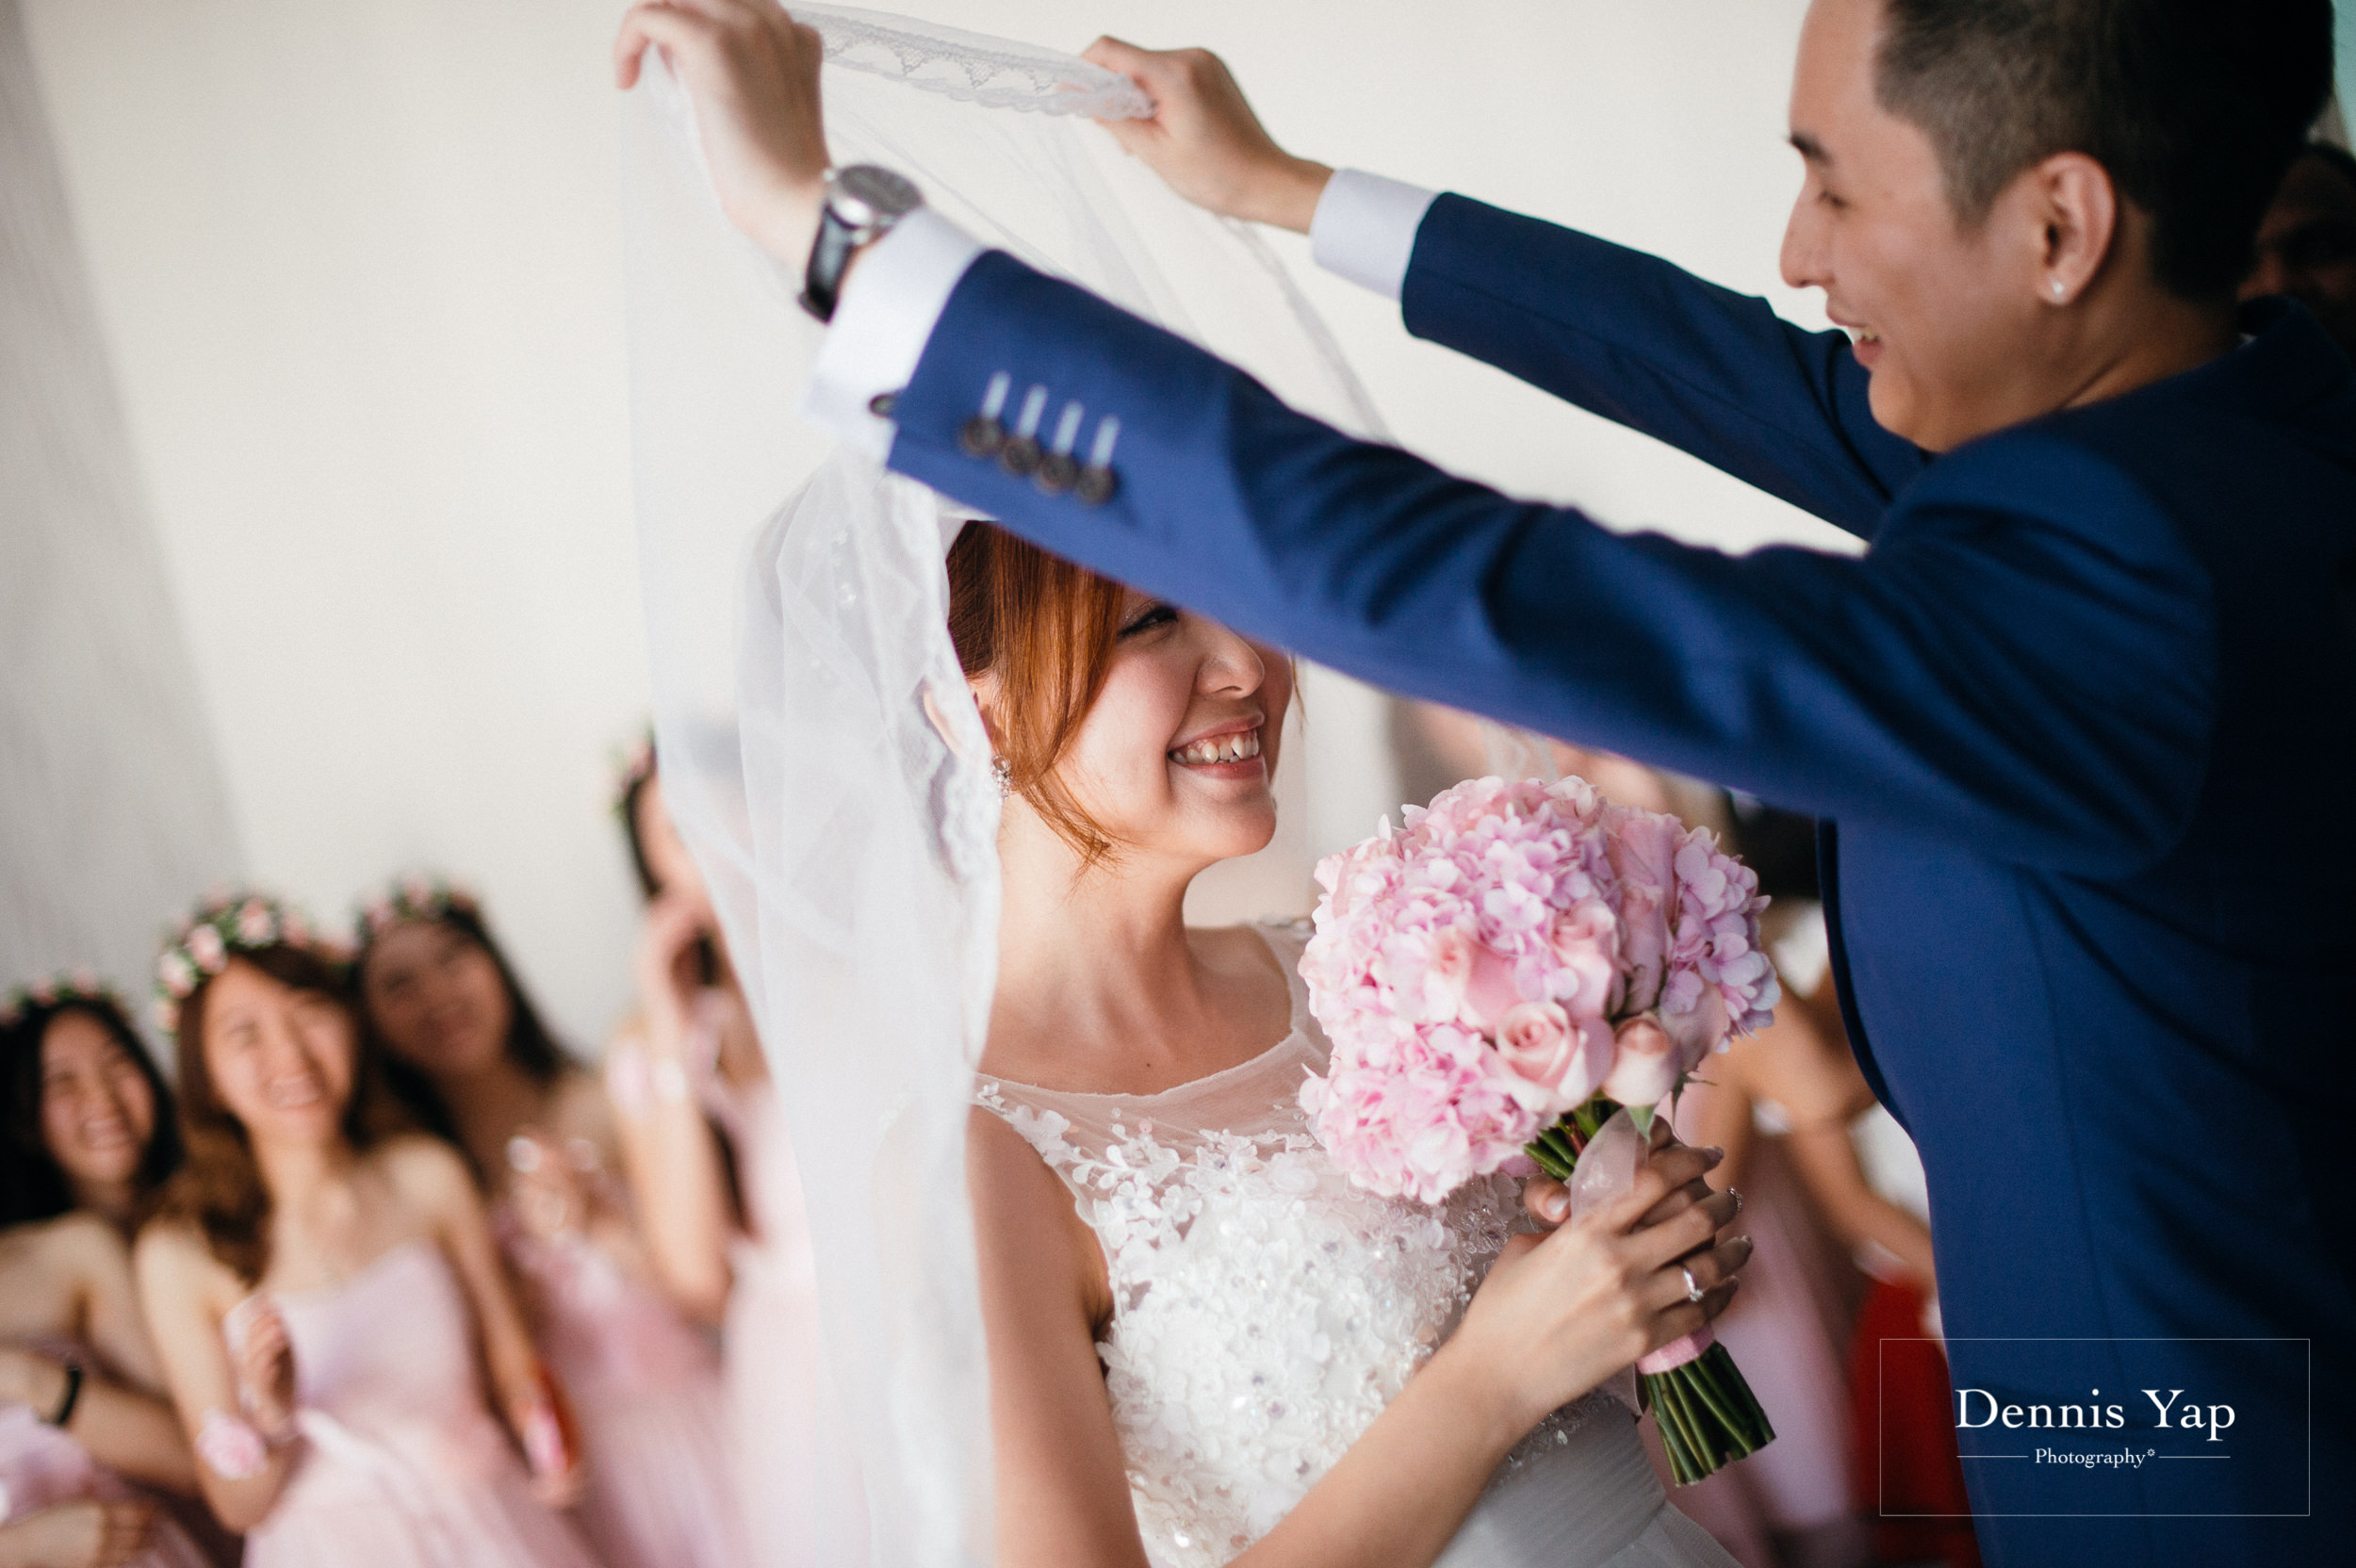 wee kee rachel wedding day setia alam convention center dennis yap malaysia top wedding photographer-6.jpg